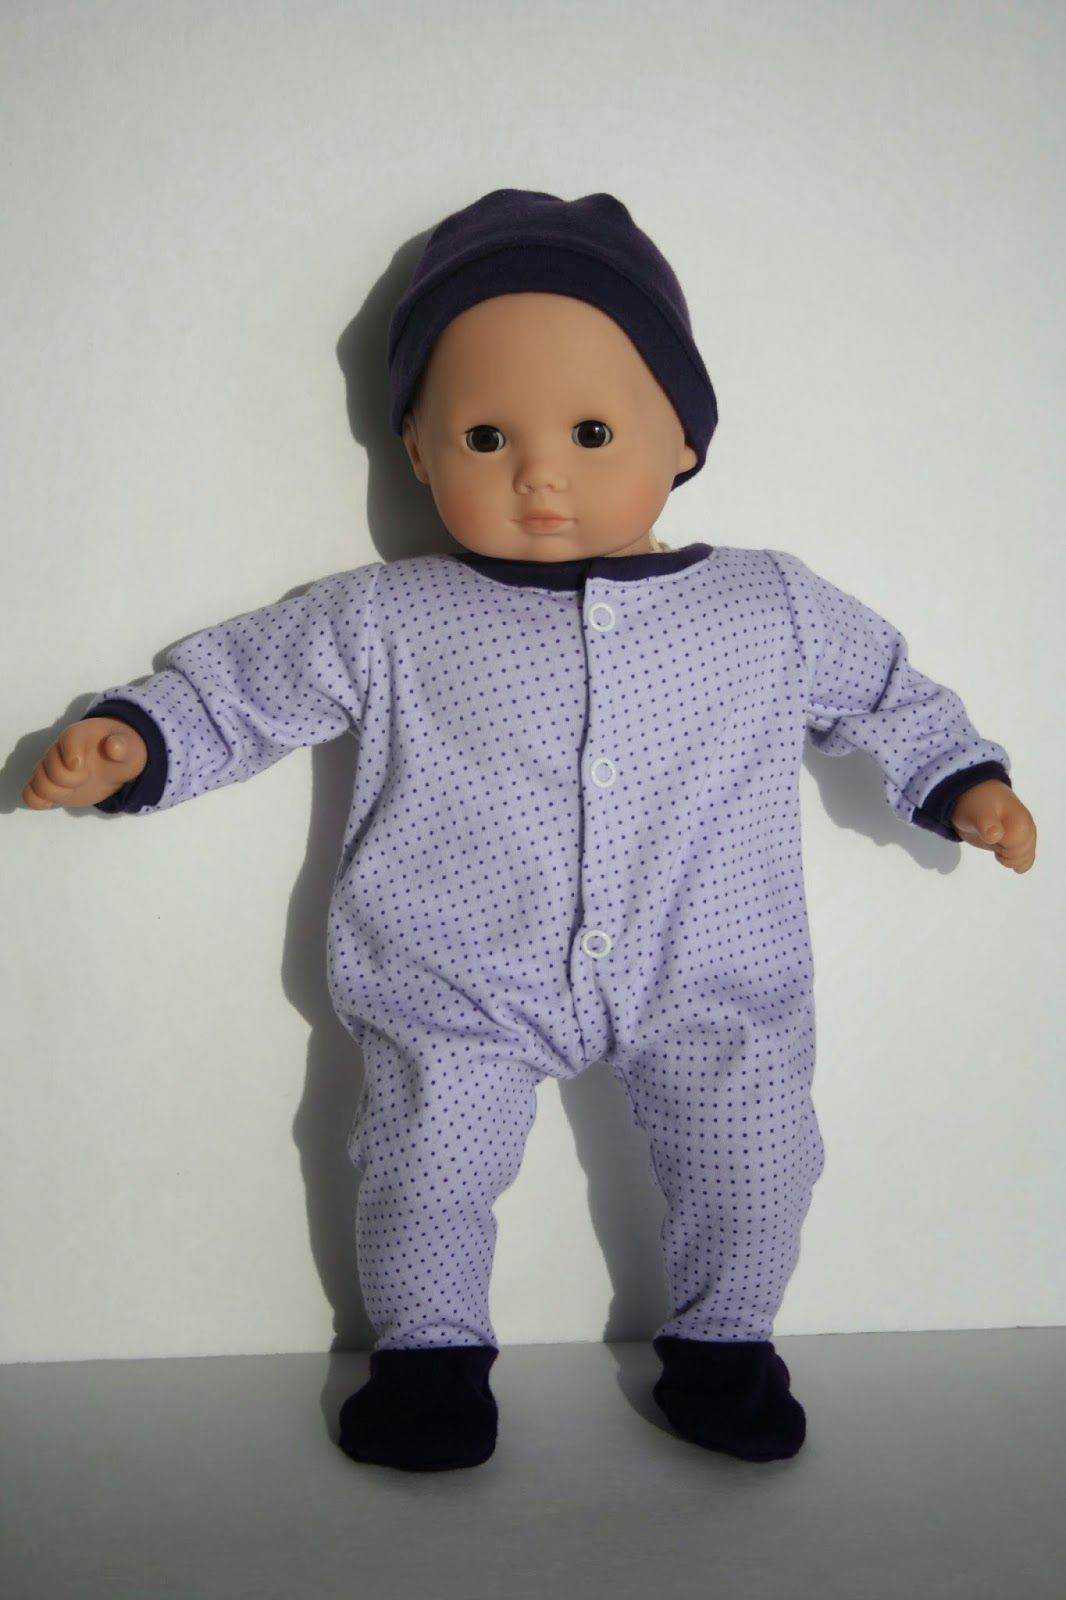 DIY - How to Make: Doll Joggers -Handmade - Clothes - Craft - 4K ...